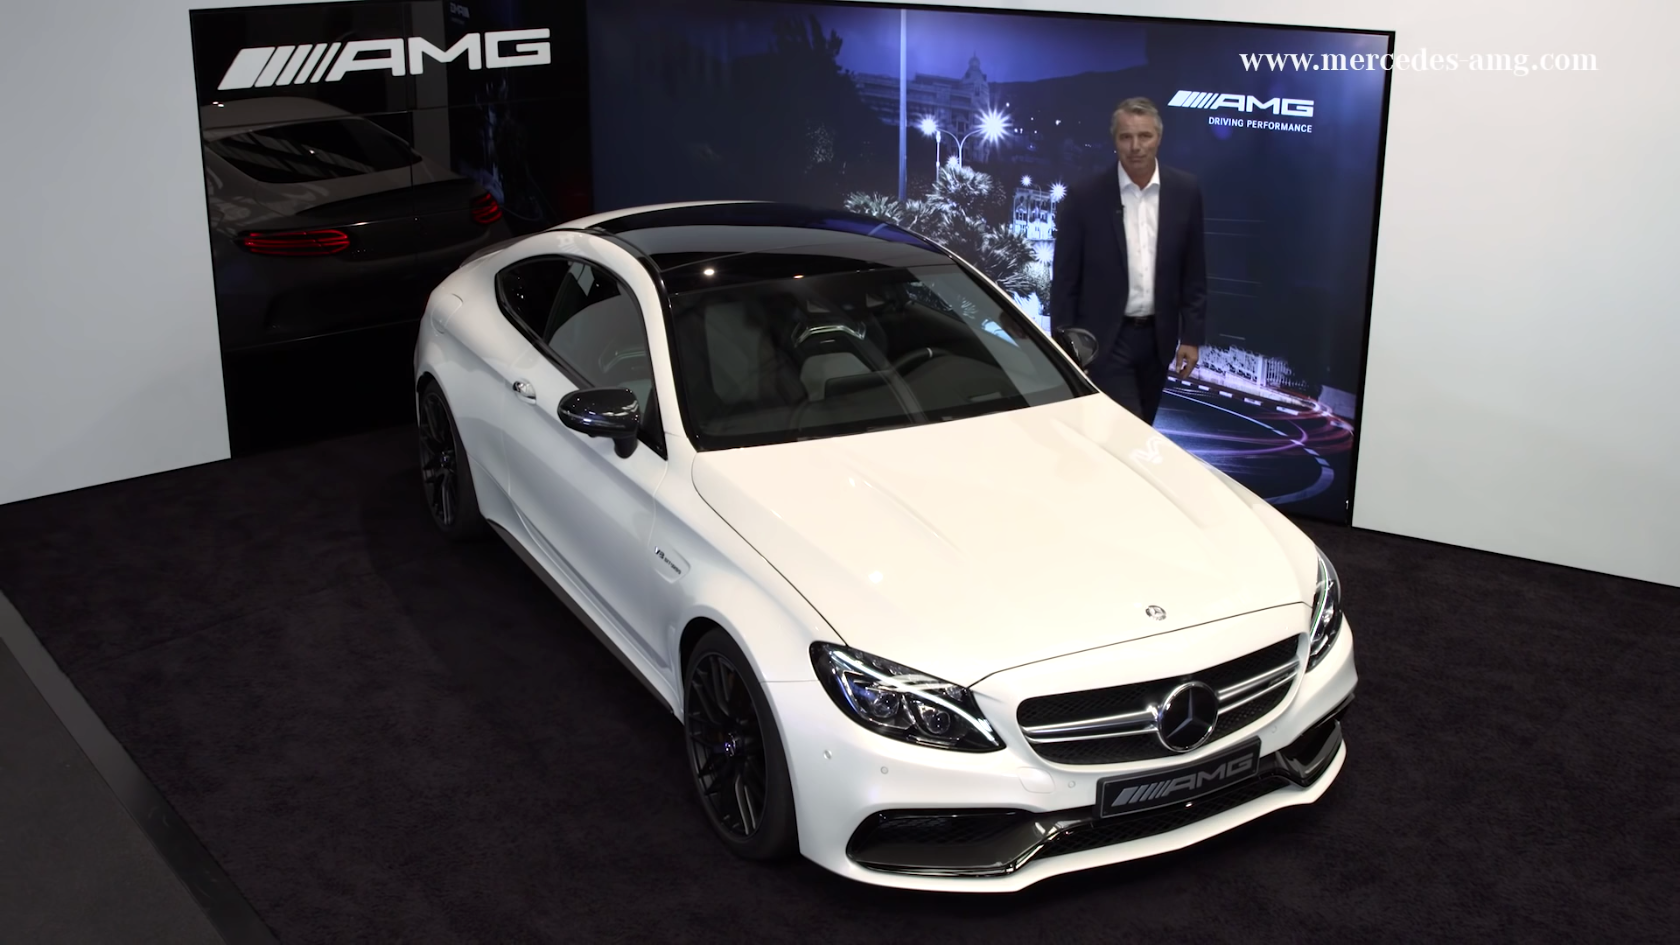 2017 Mercedes Amg C63 Coupe Gets Comprehensive Walkaround Video Presentation